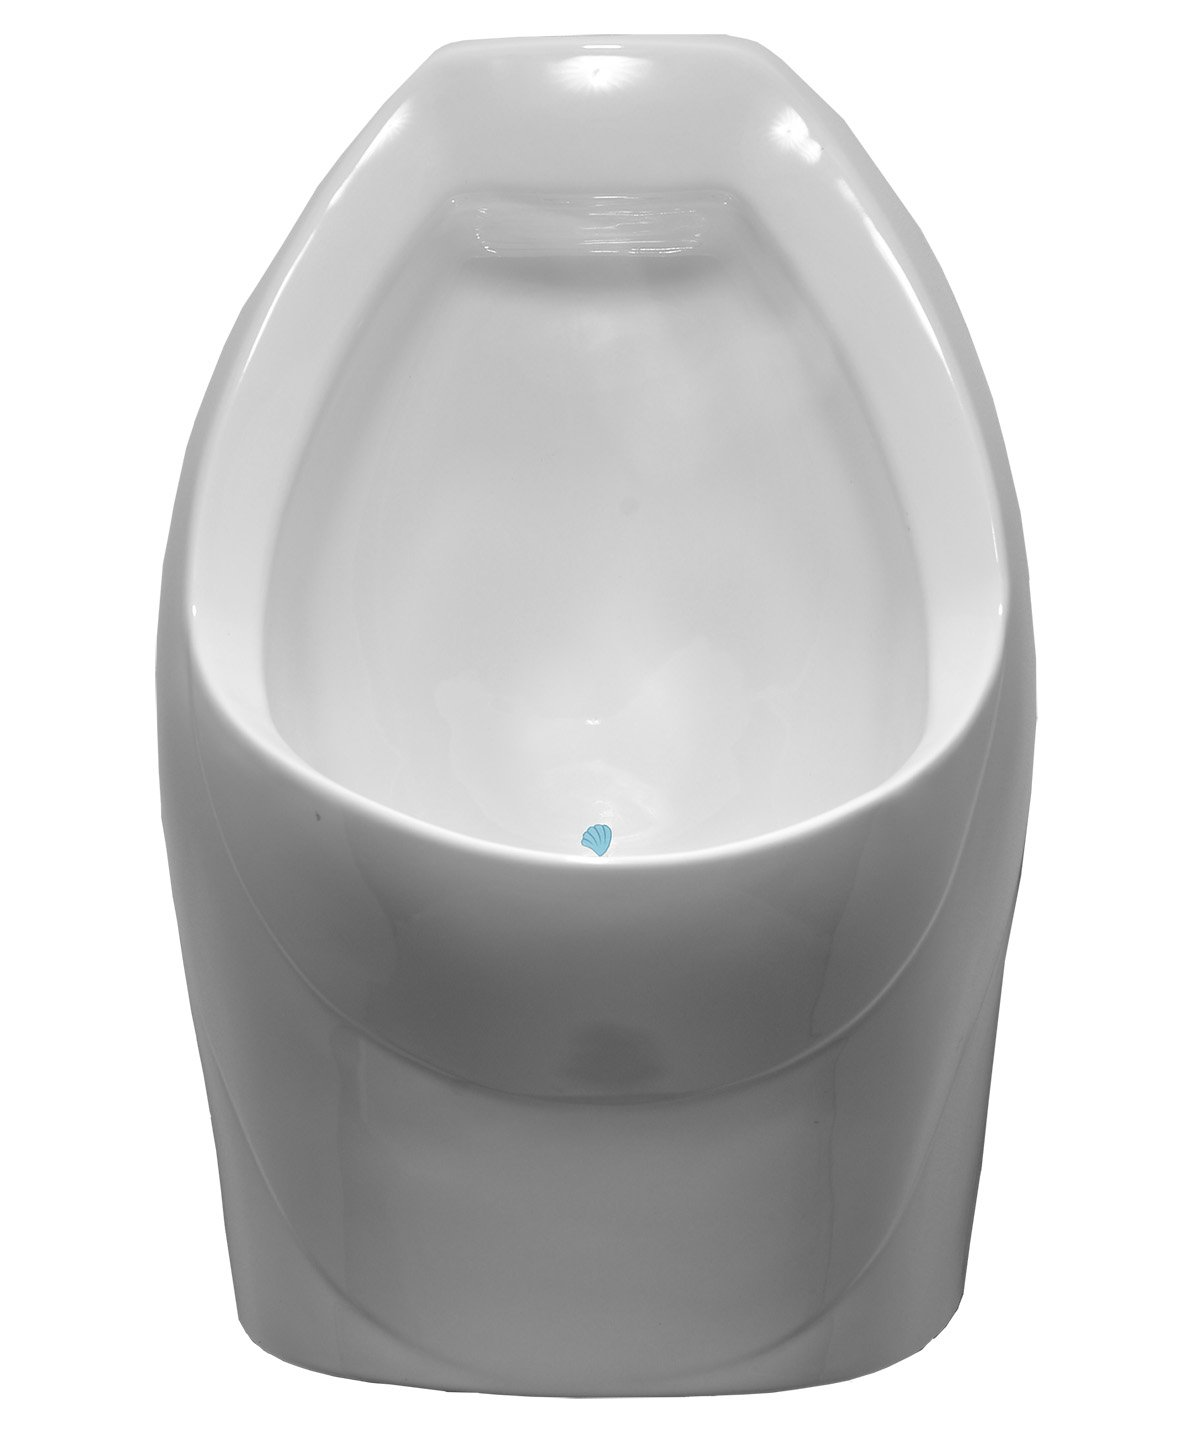 WaterFree Urinal by Sloan